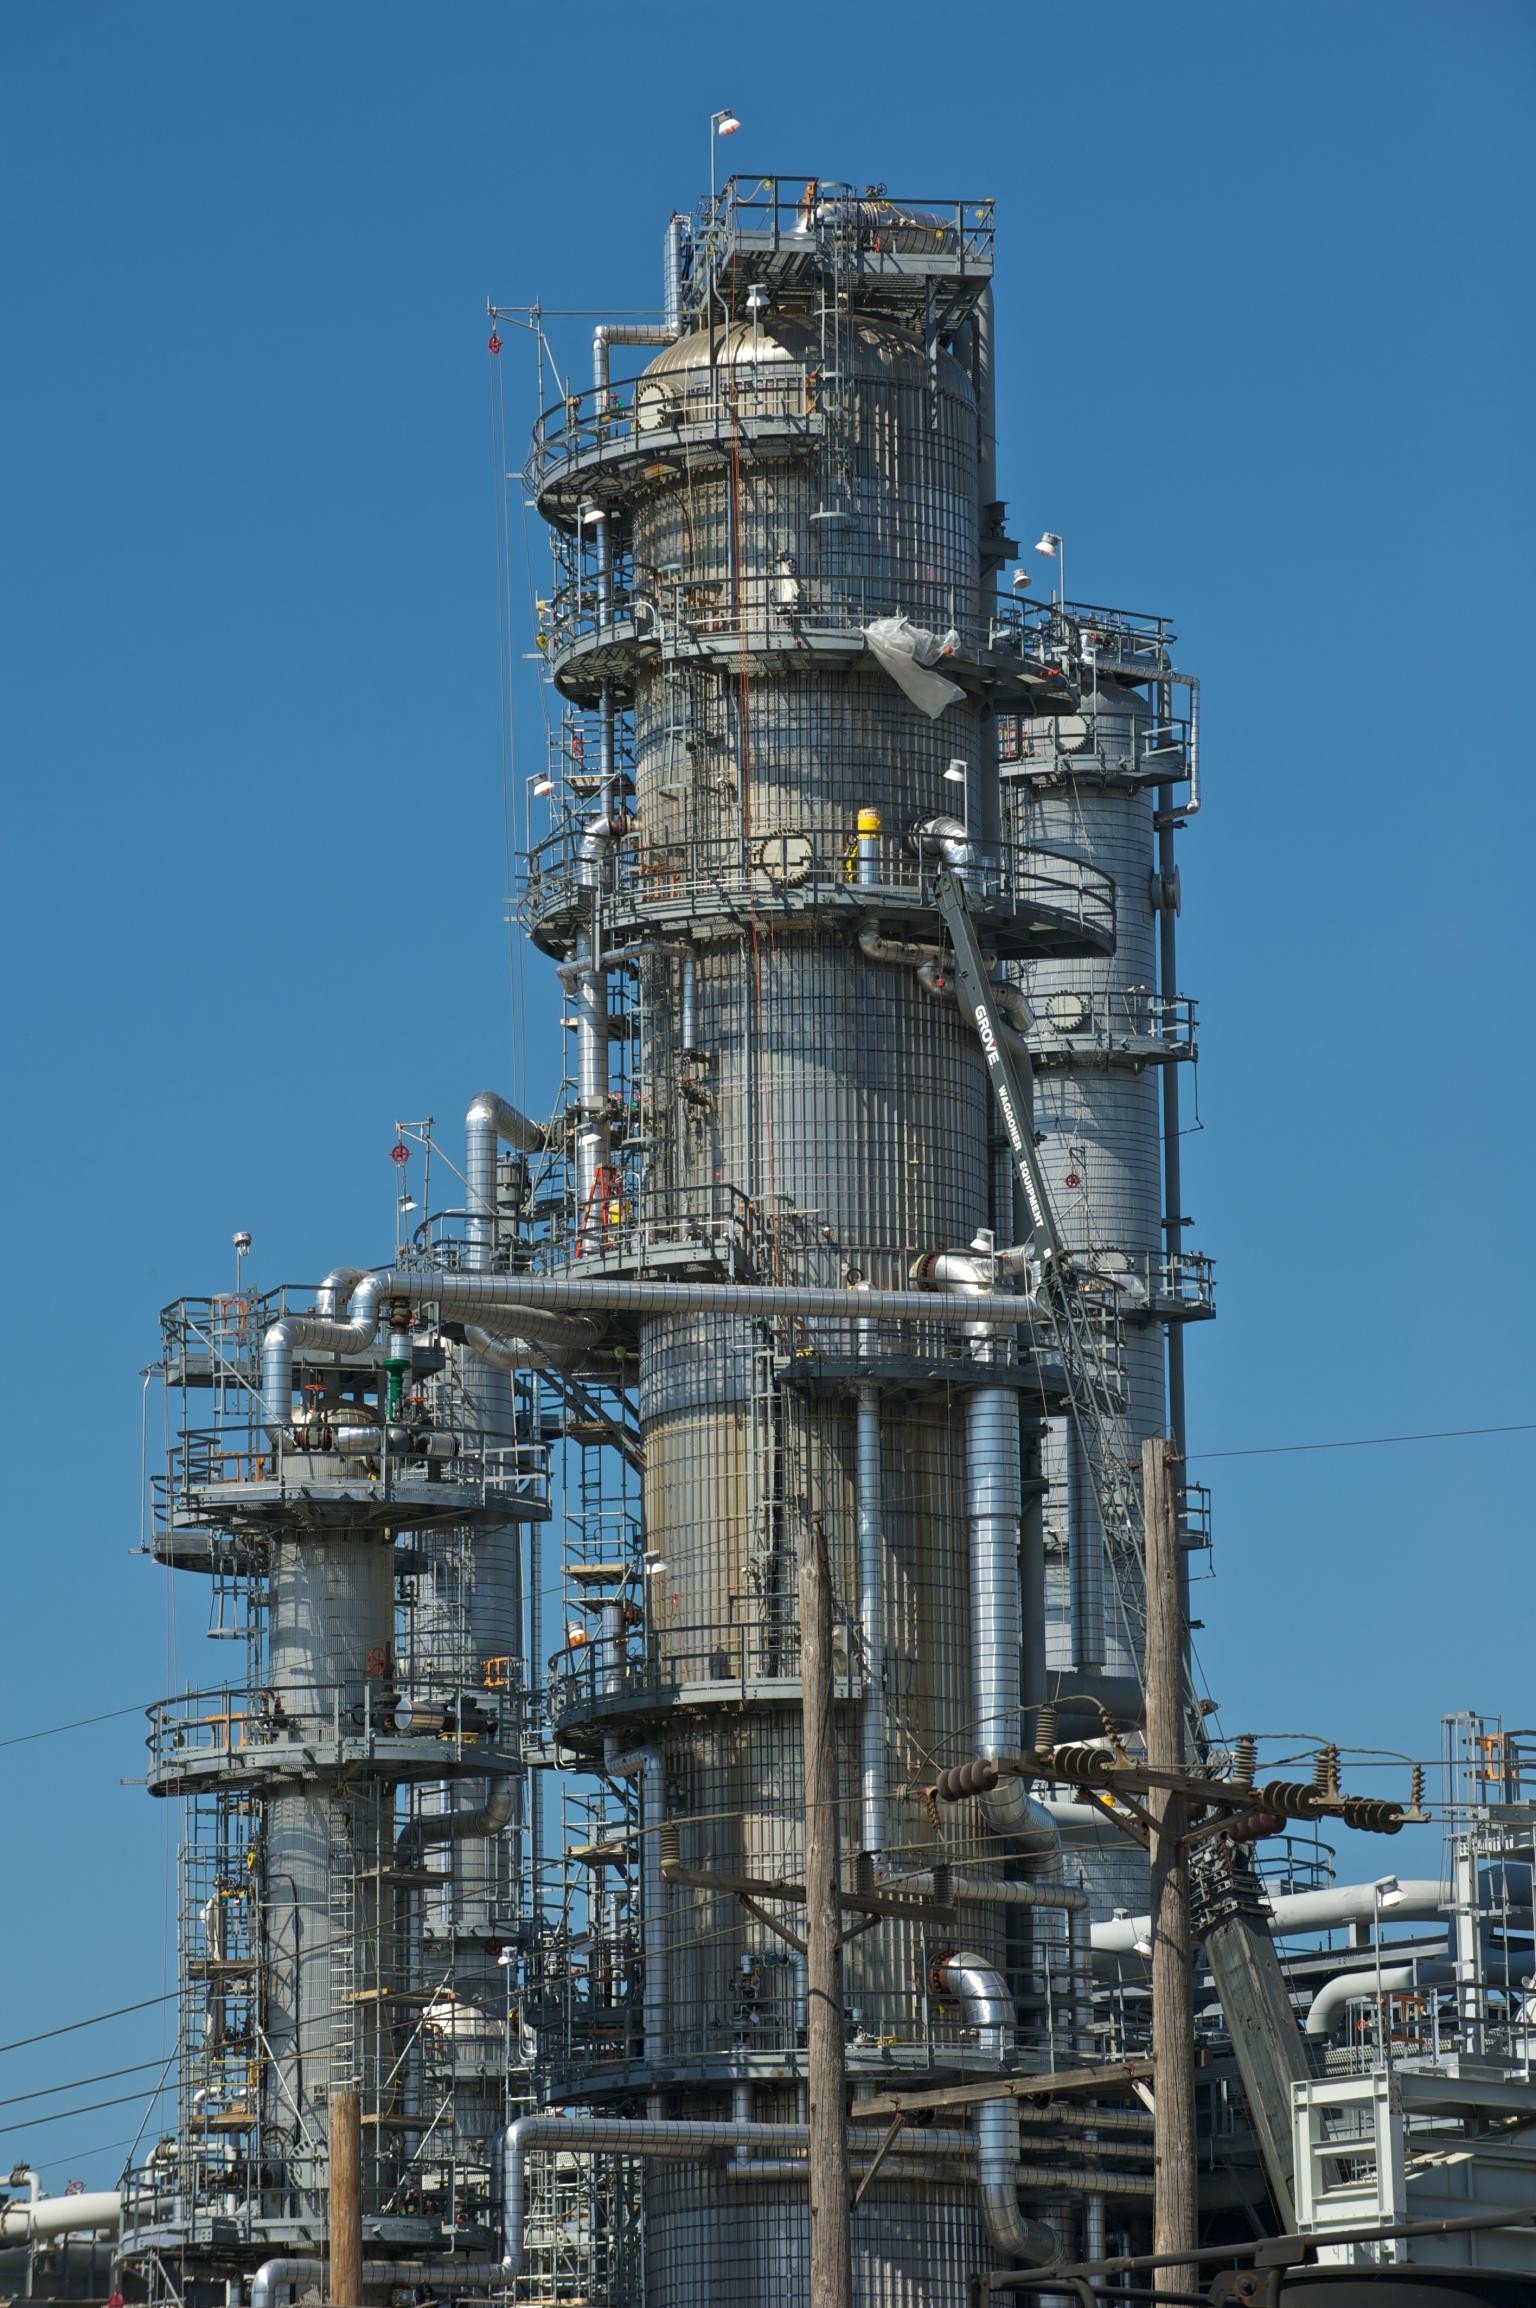 Phillips 66's new natural gas fractionator is to be located close to its existing Sweeny refinery in Texas